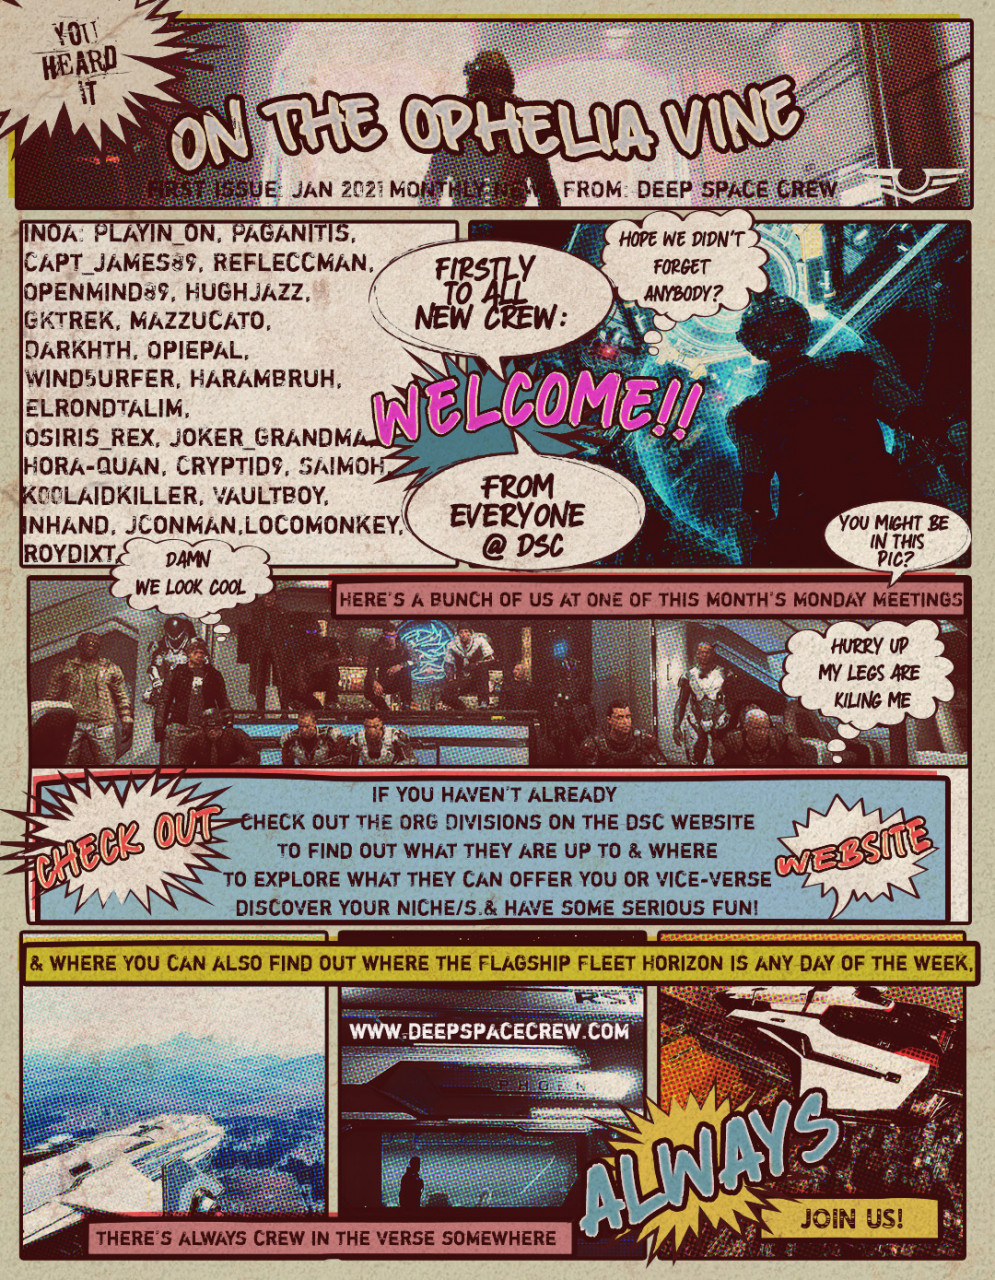 On The Ophelia Vine - Monthly News Strip from DSC - 1st Issue